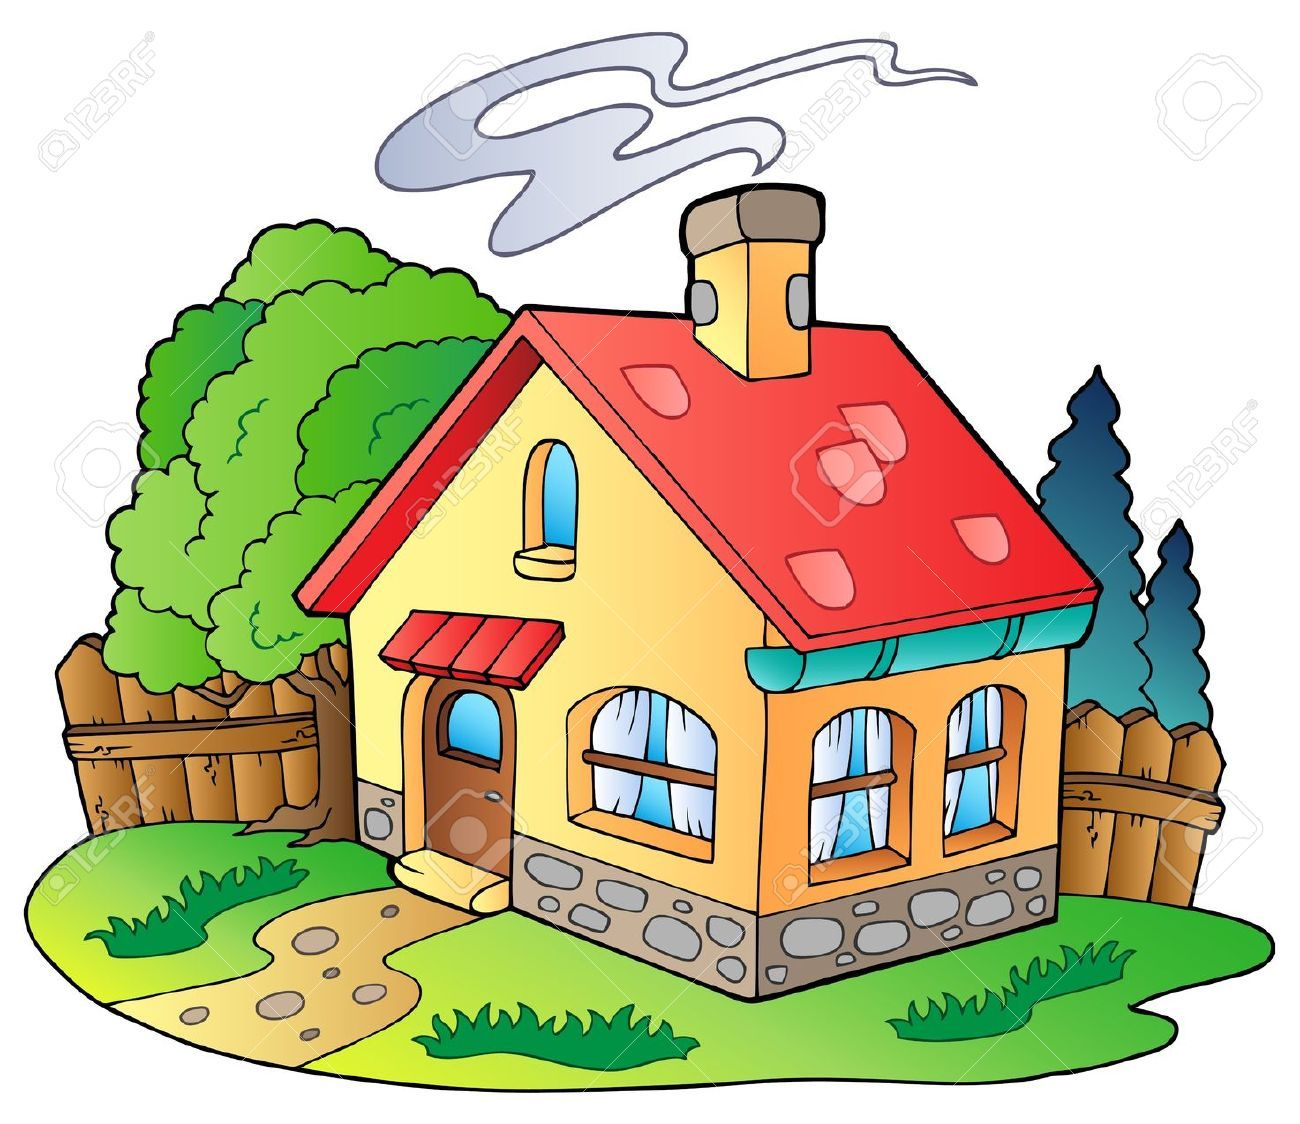 small family house vector buy this stock vector on u find other images